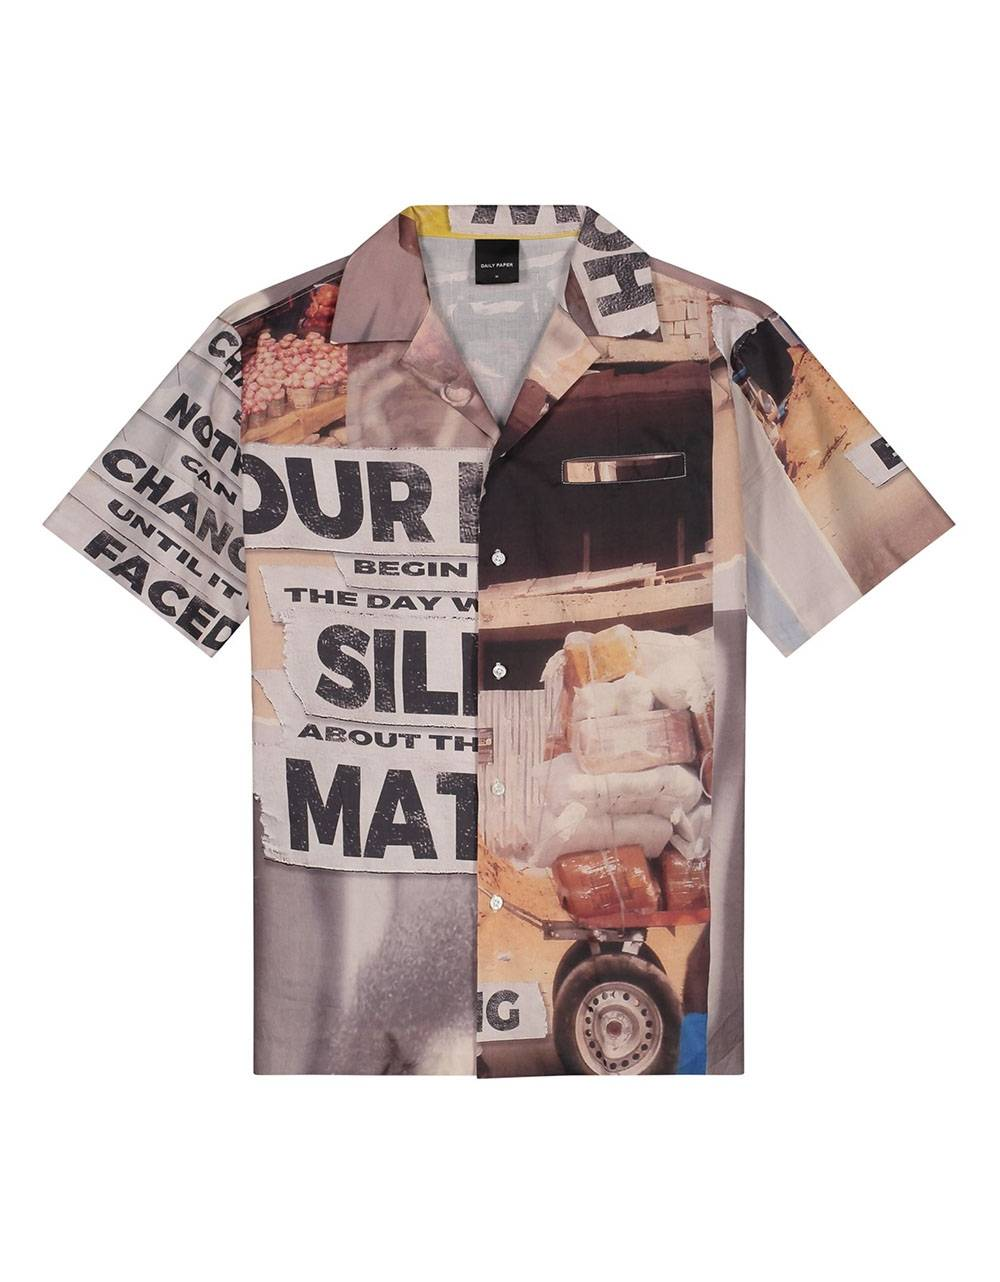 Daily Paper Kovan collage shirt - collage allover DAILY PAPER Shirt 155,00€